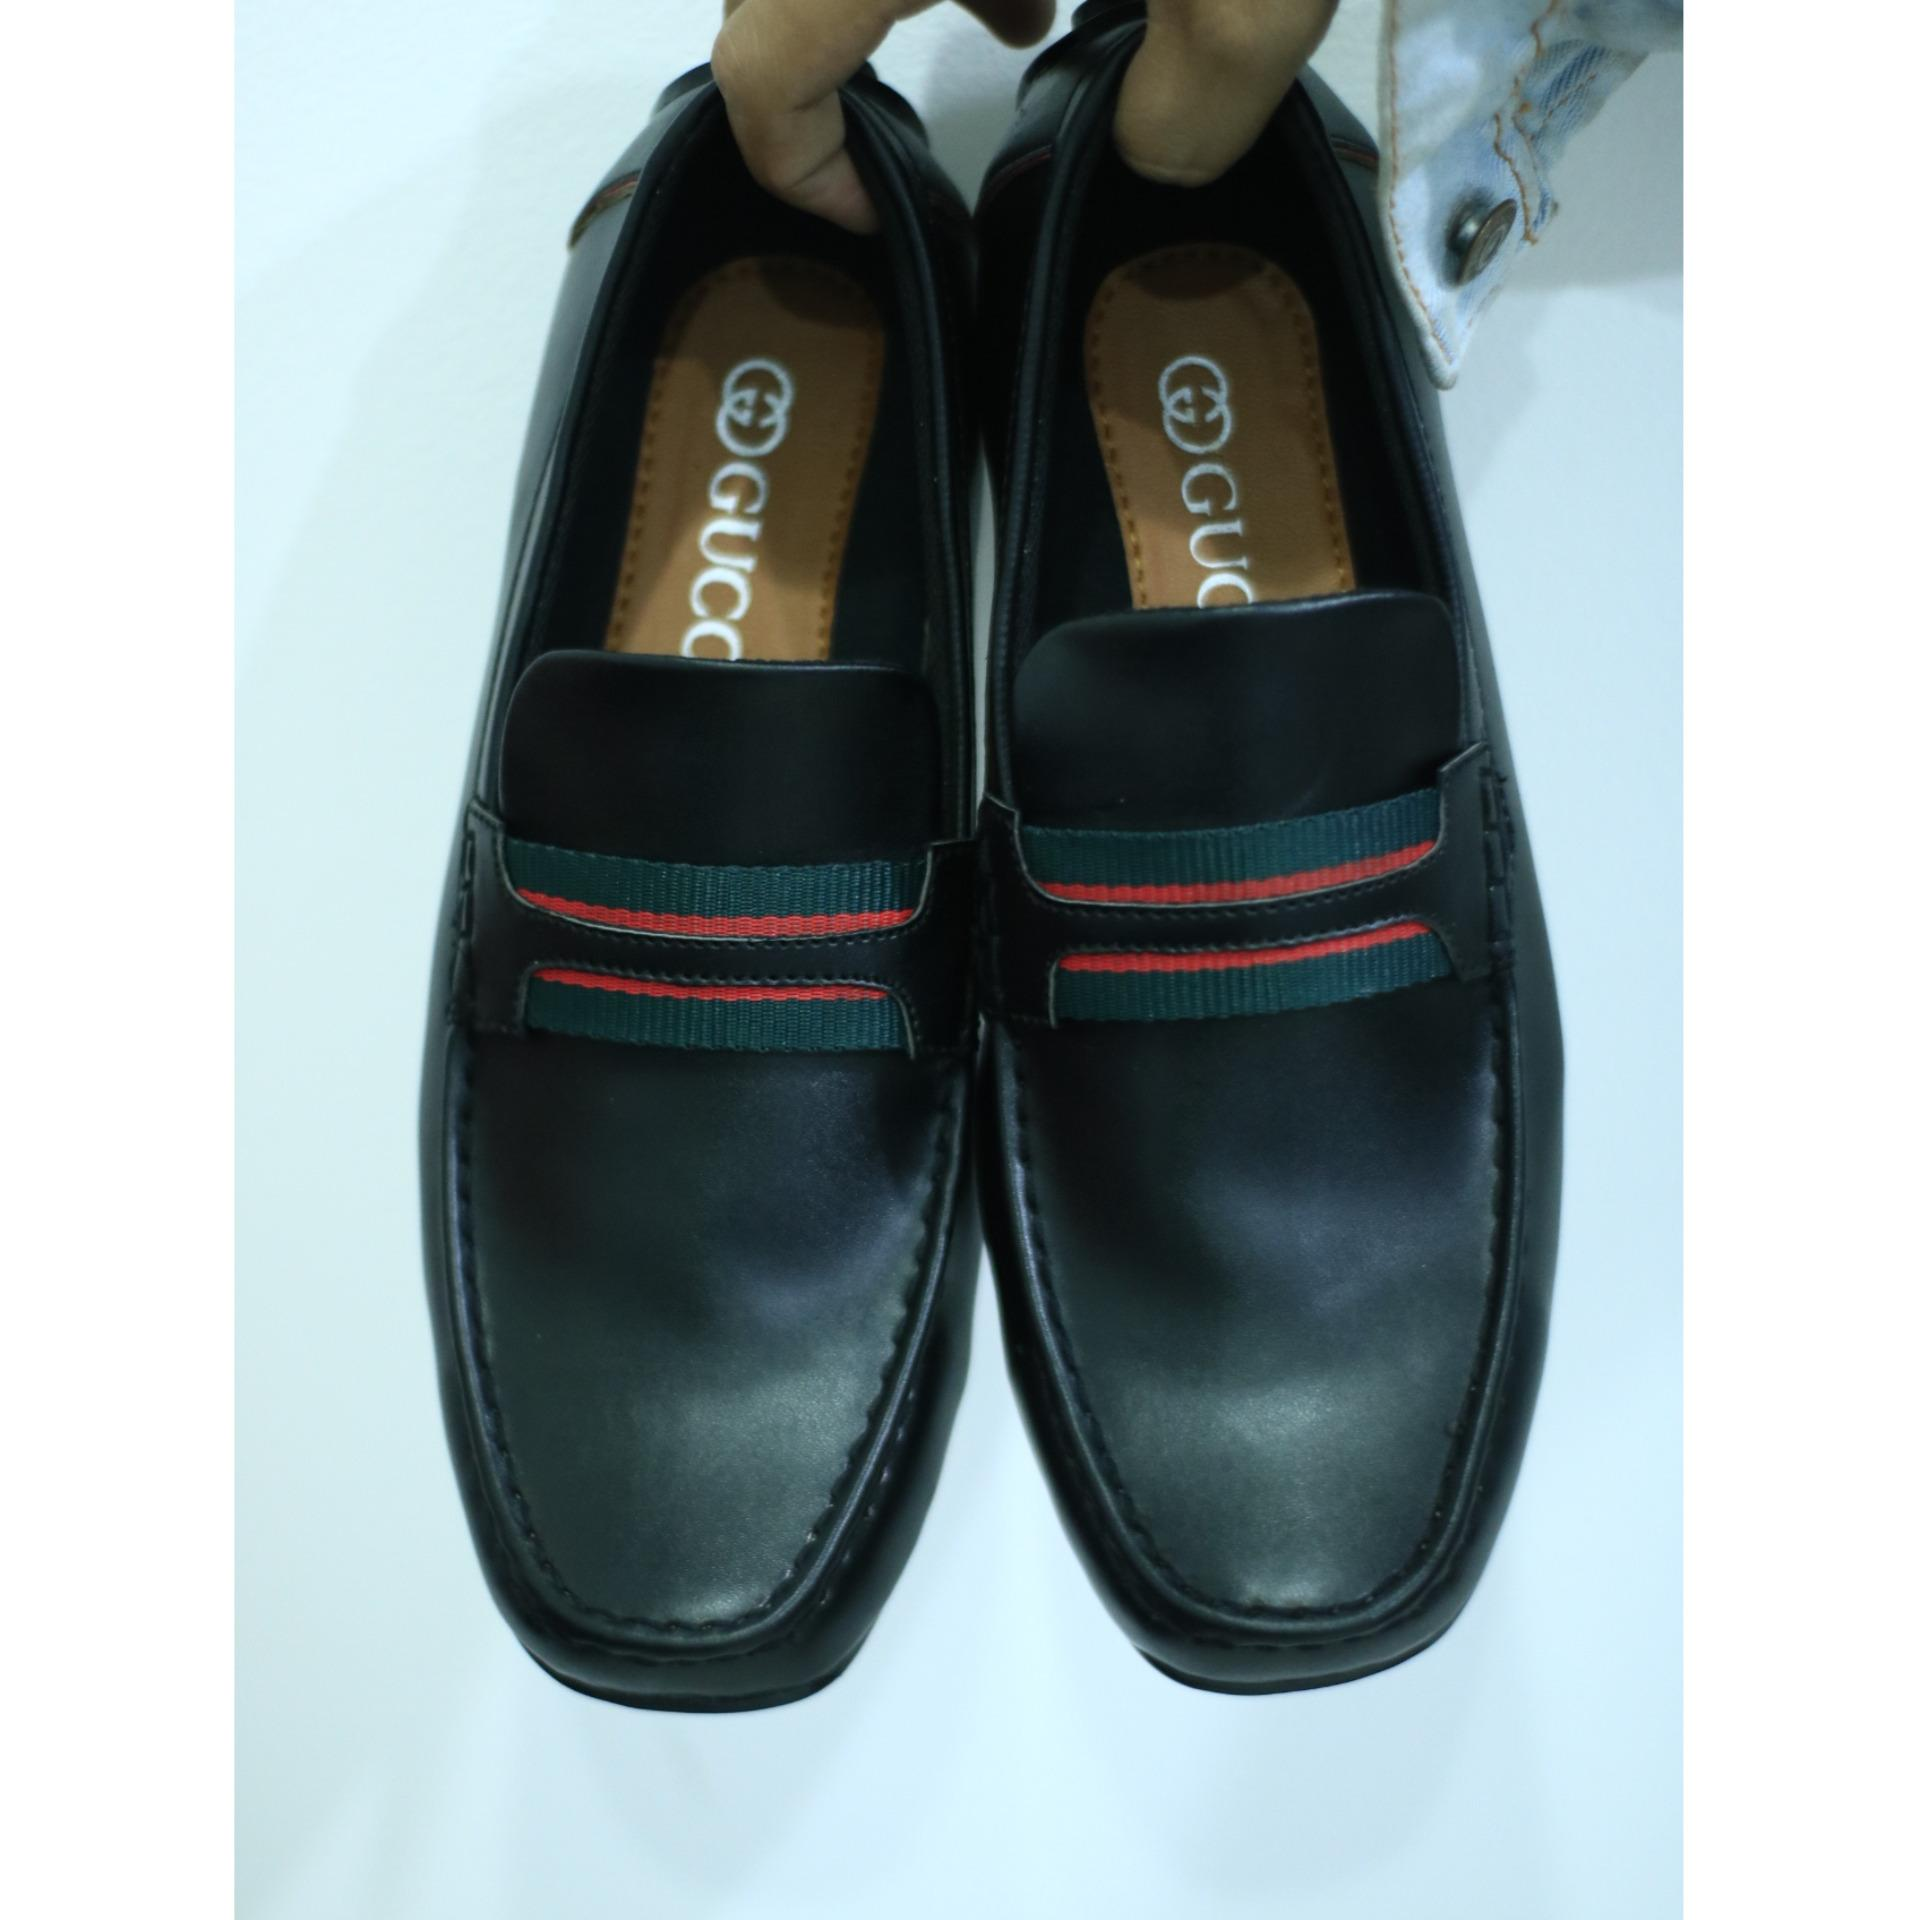 GUCCI - sepatu casual GUCI pria casual formal mocasin slip on flat shoes slop pria kickers loafers adidas (Lokal)